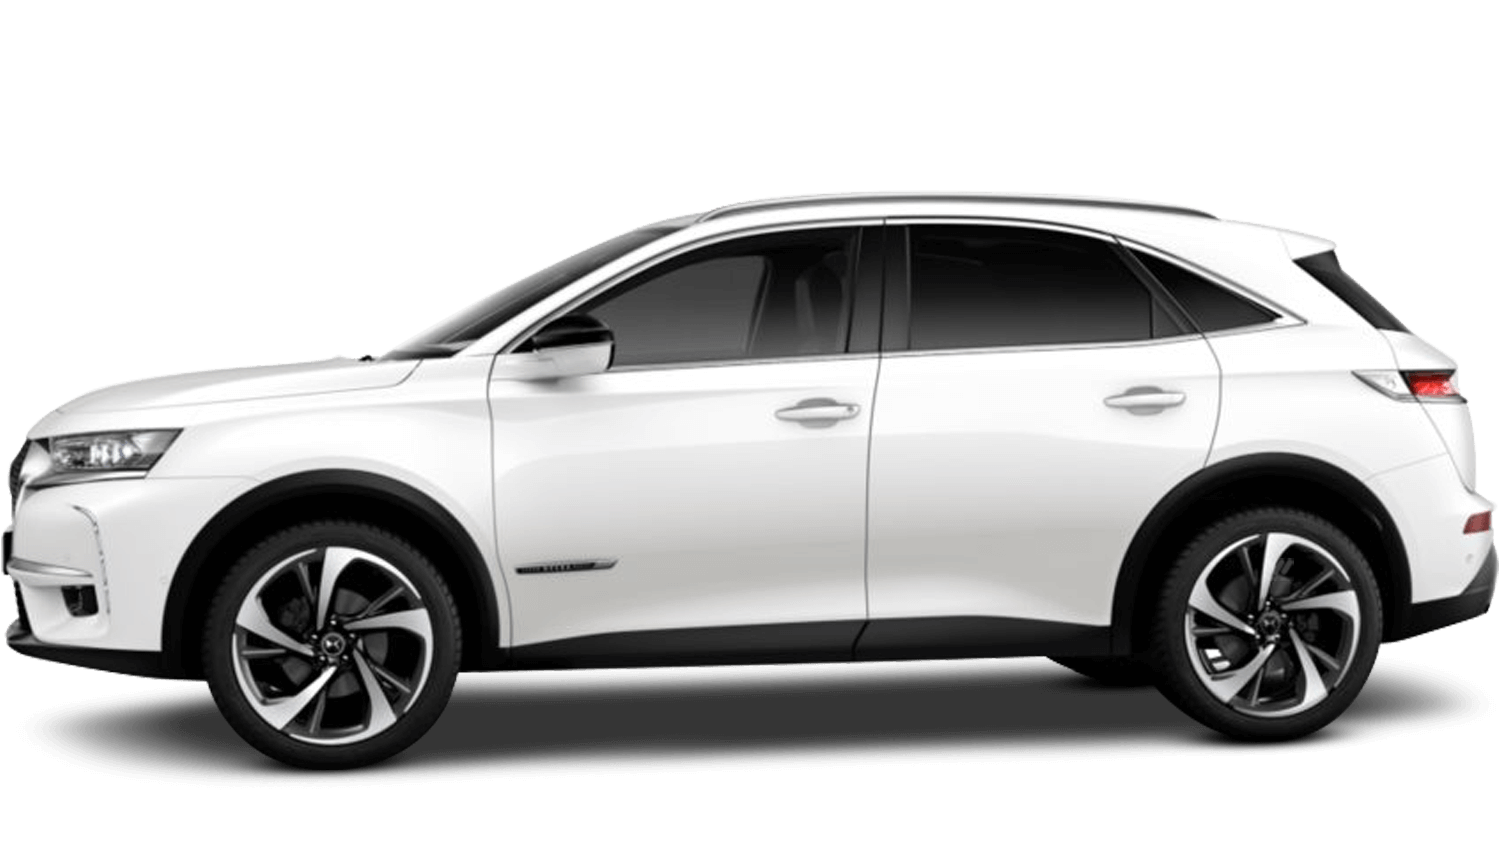 Polar White DS DS 7 Crossback